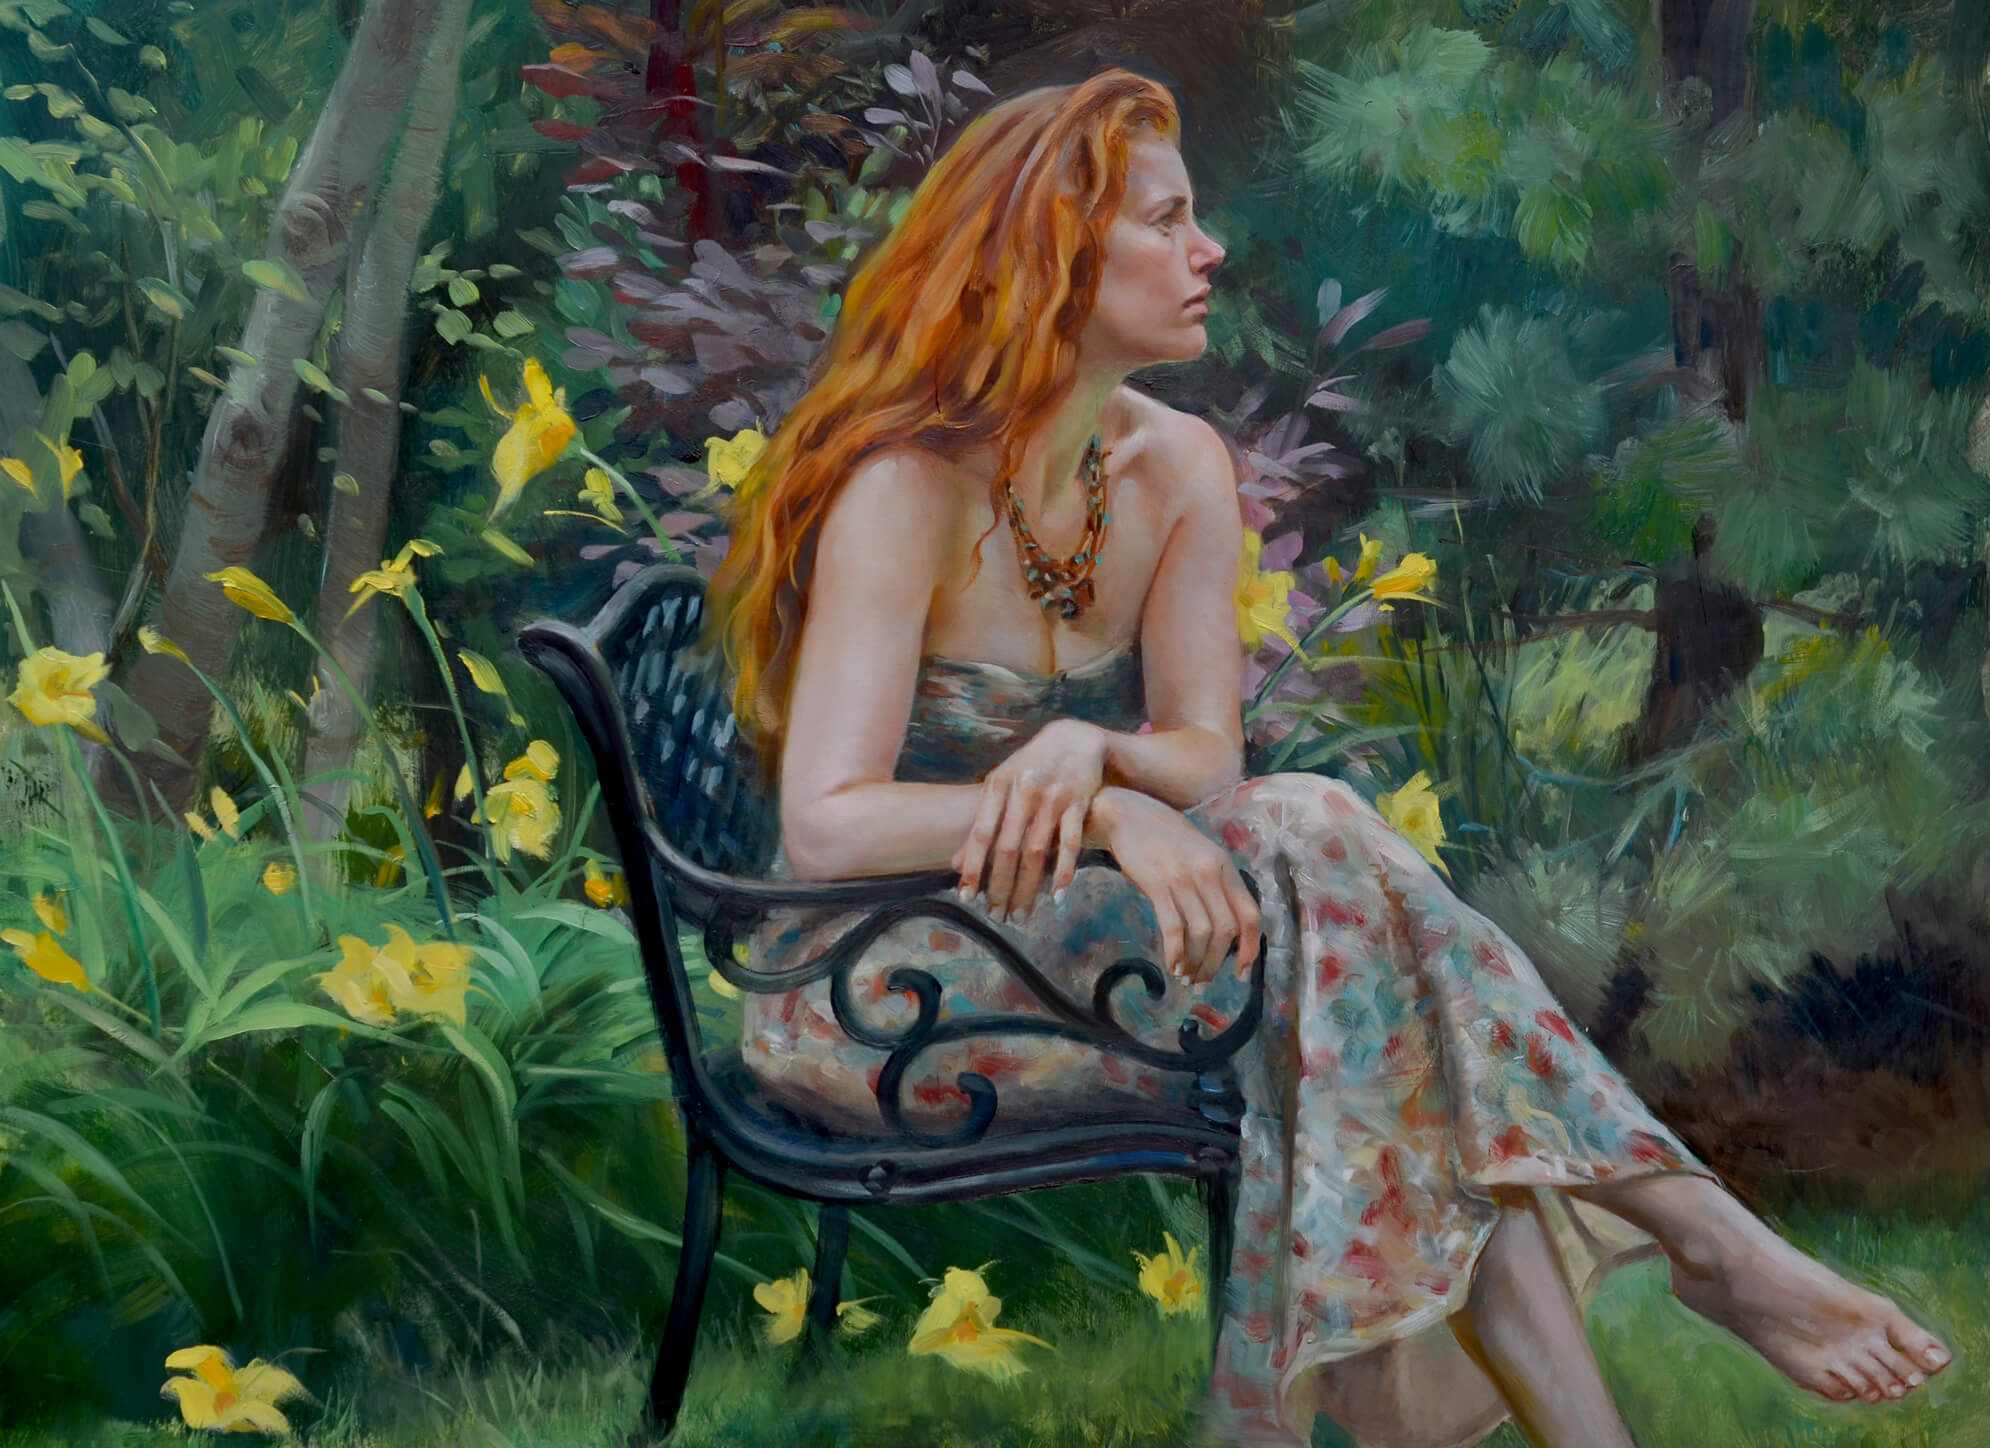 Young woman with red hair in a floral dress sitting on a wrought iron chair in a garden blooming with yellow lilies